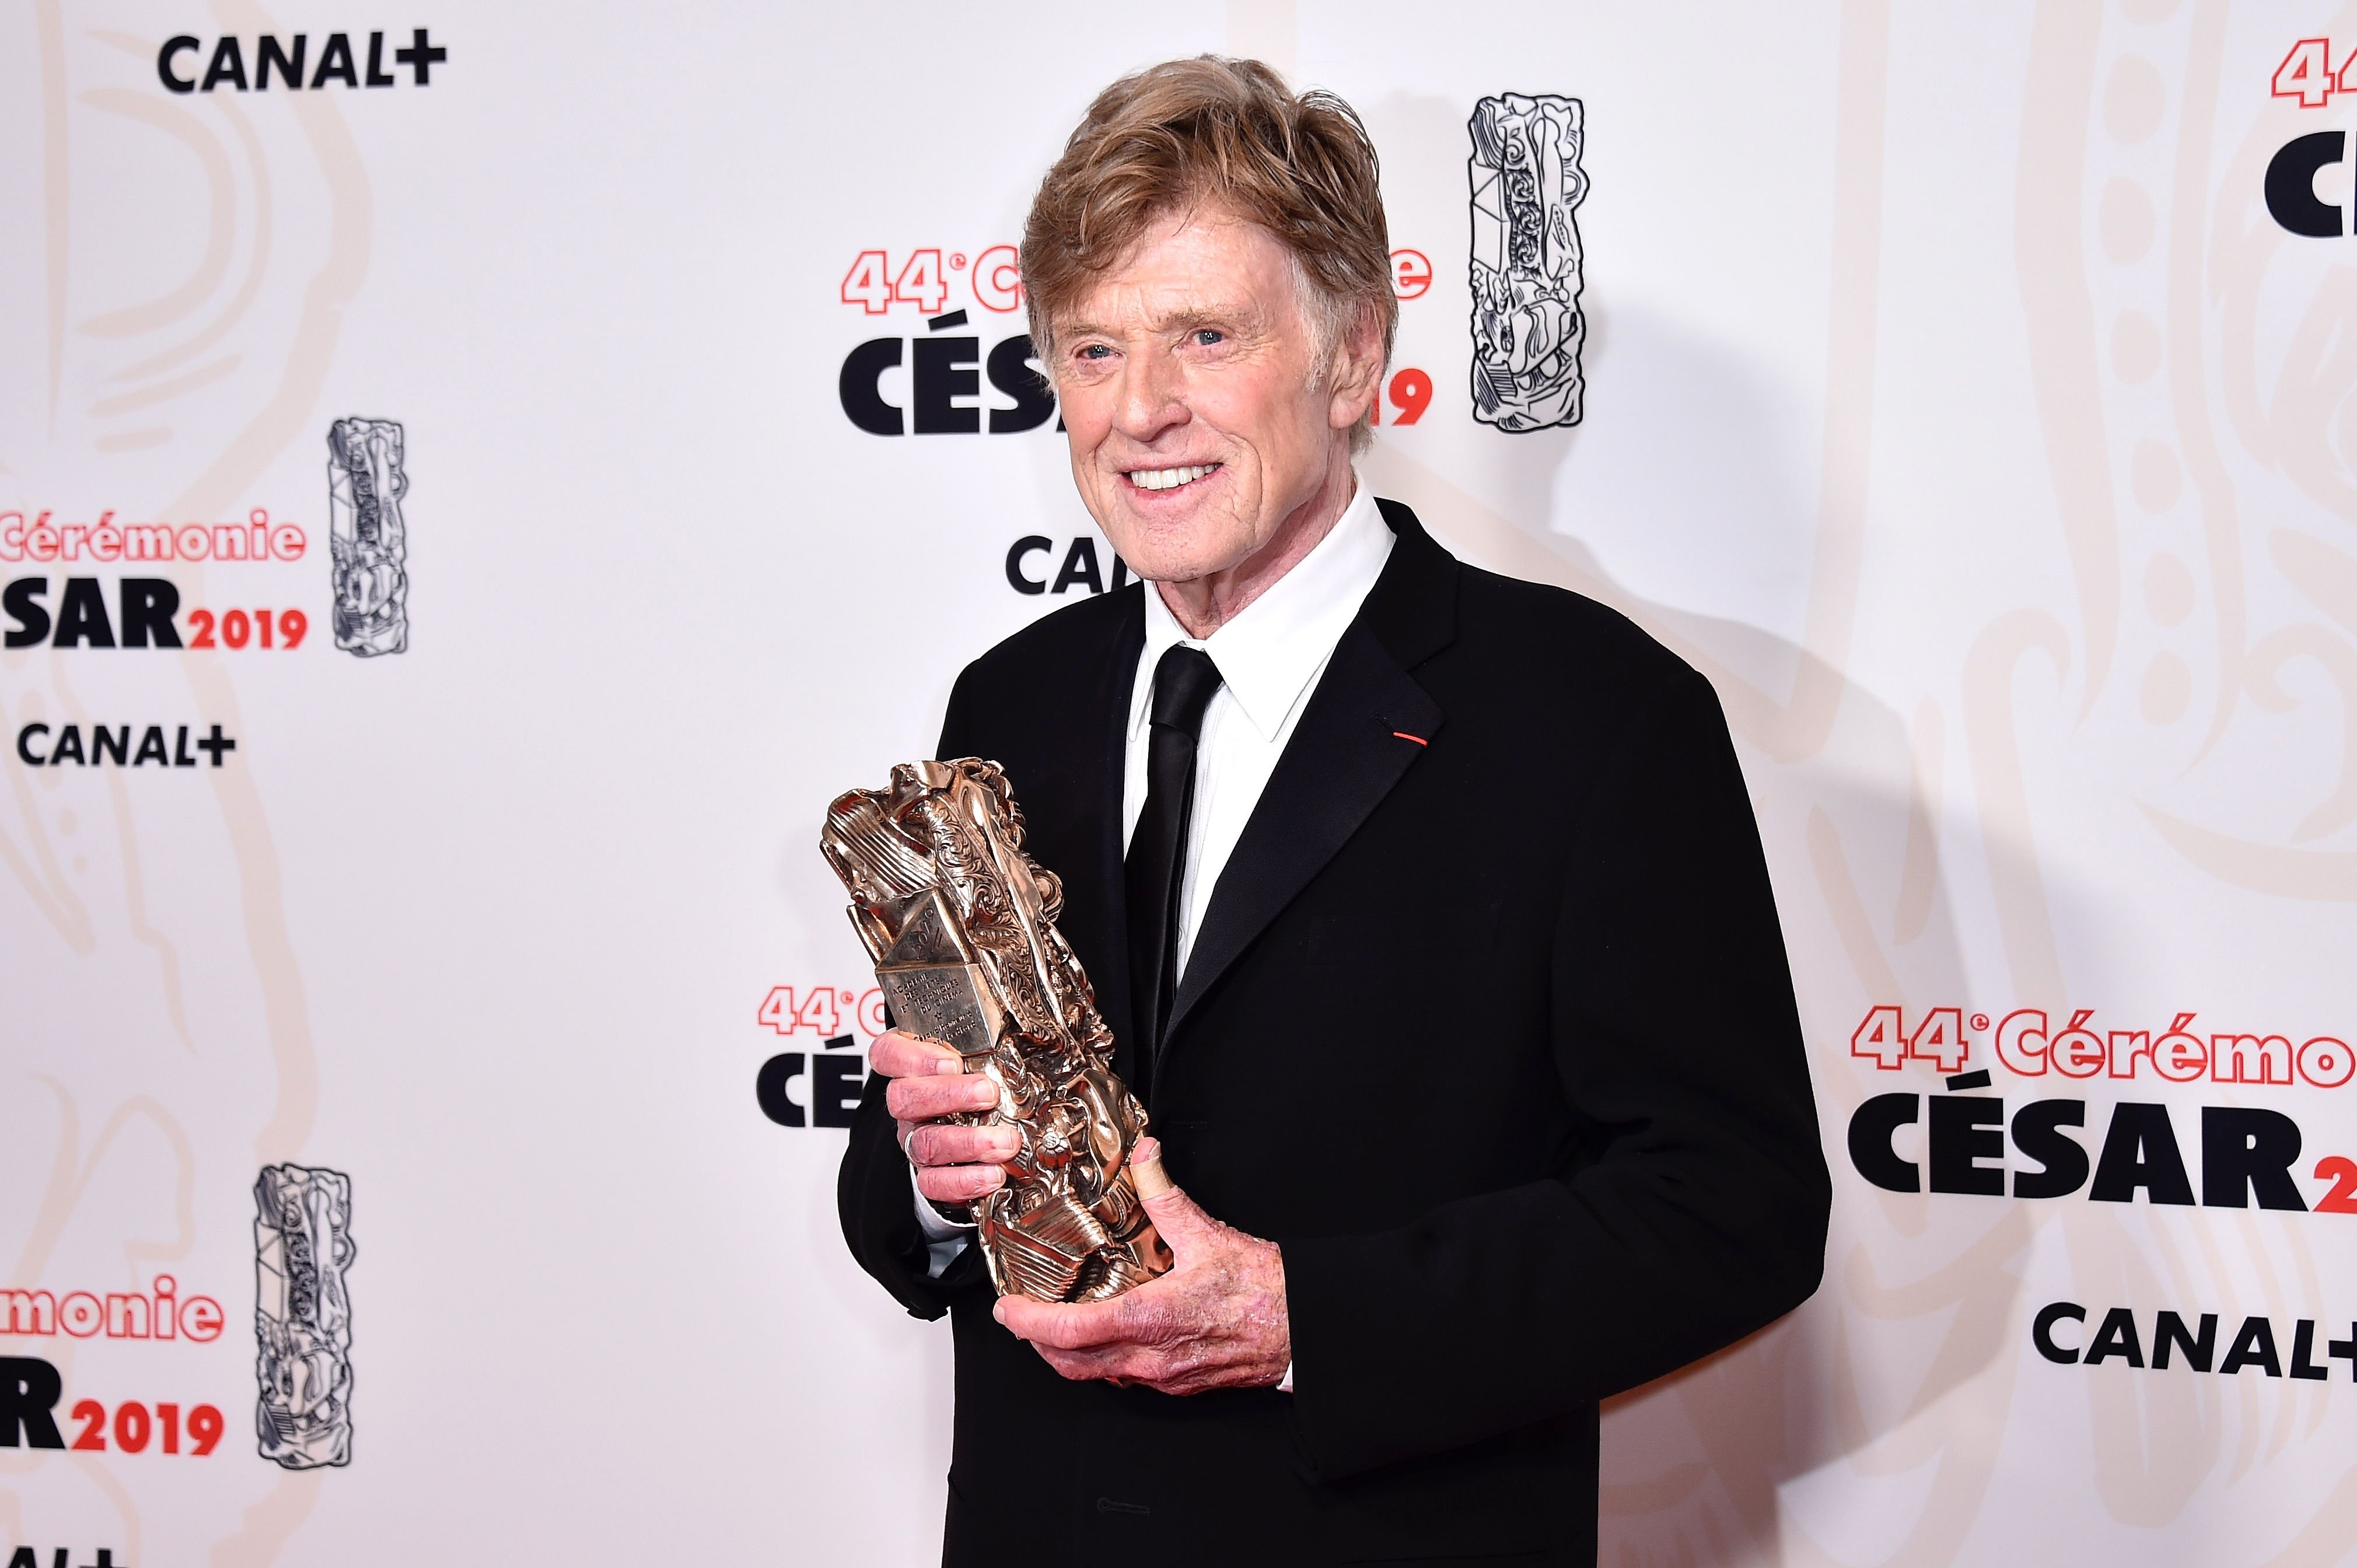 Robert Redford poses with the Honorary Cesar award for his career at Salle Pleyel on February 22, 2019   Photo: Getty Images